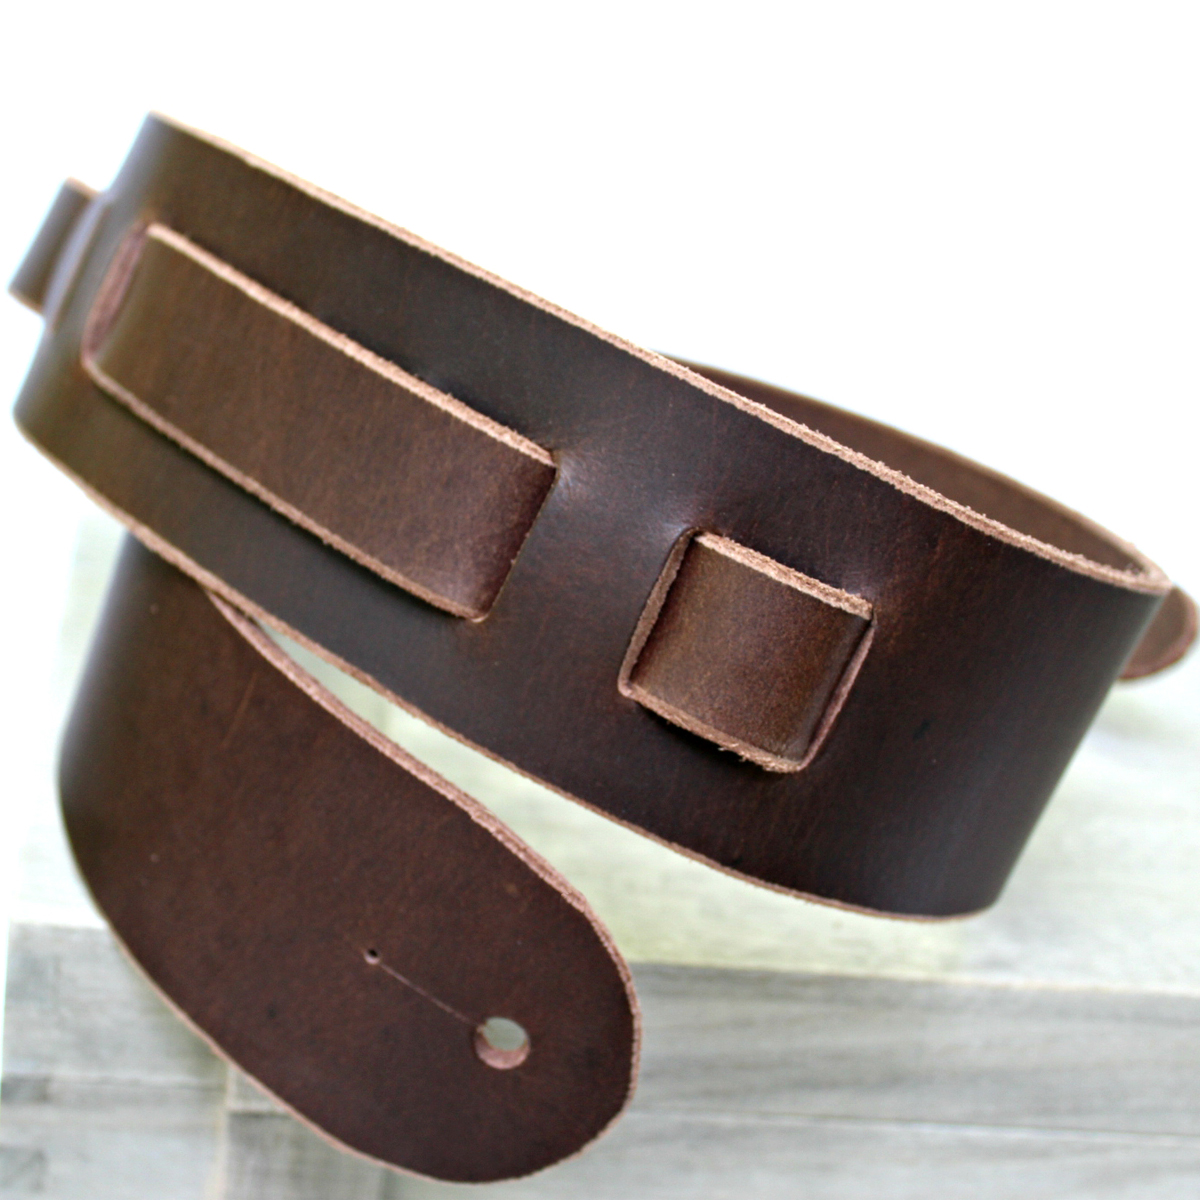 buffalo-leather-guitar-strap-brown-the-leather-smithy_1